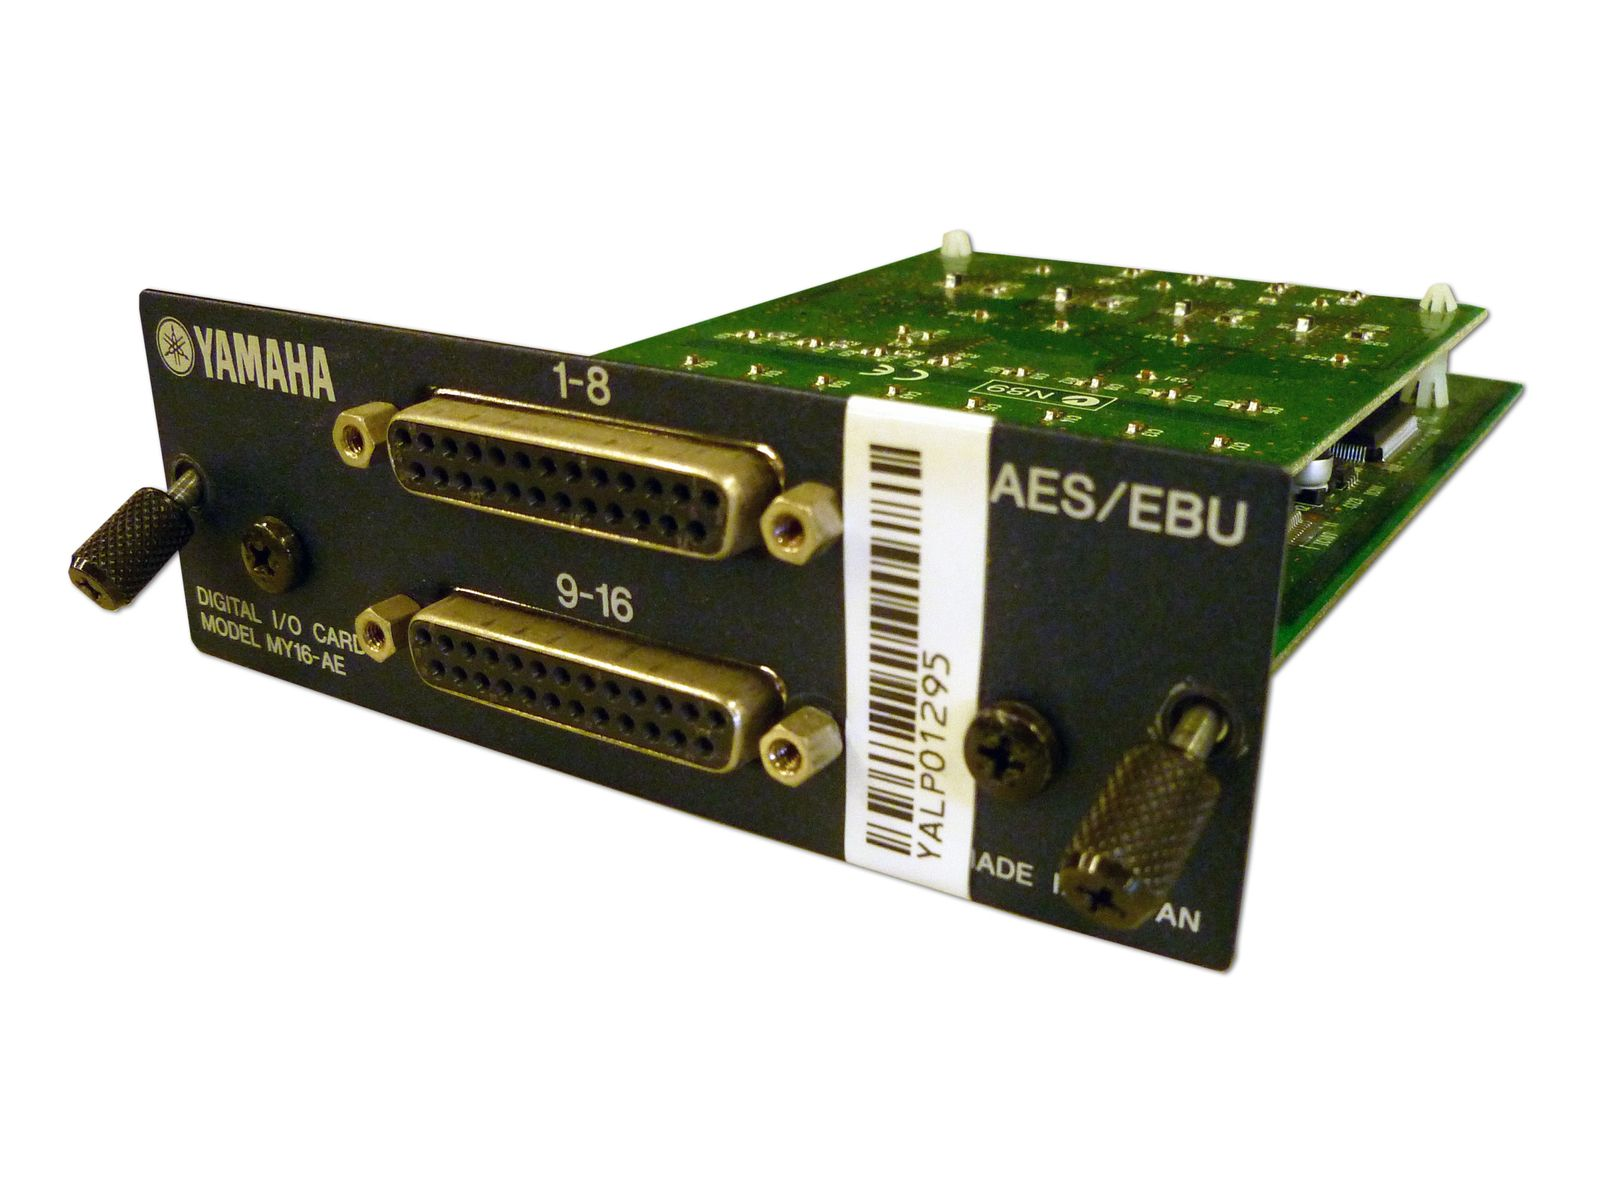 The Yamaha Model MY16-AE 16-Channel AES/EBU I/O Card is available at Hollywood Sound Systems.